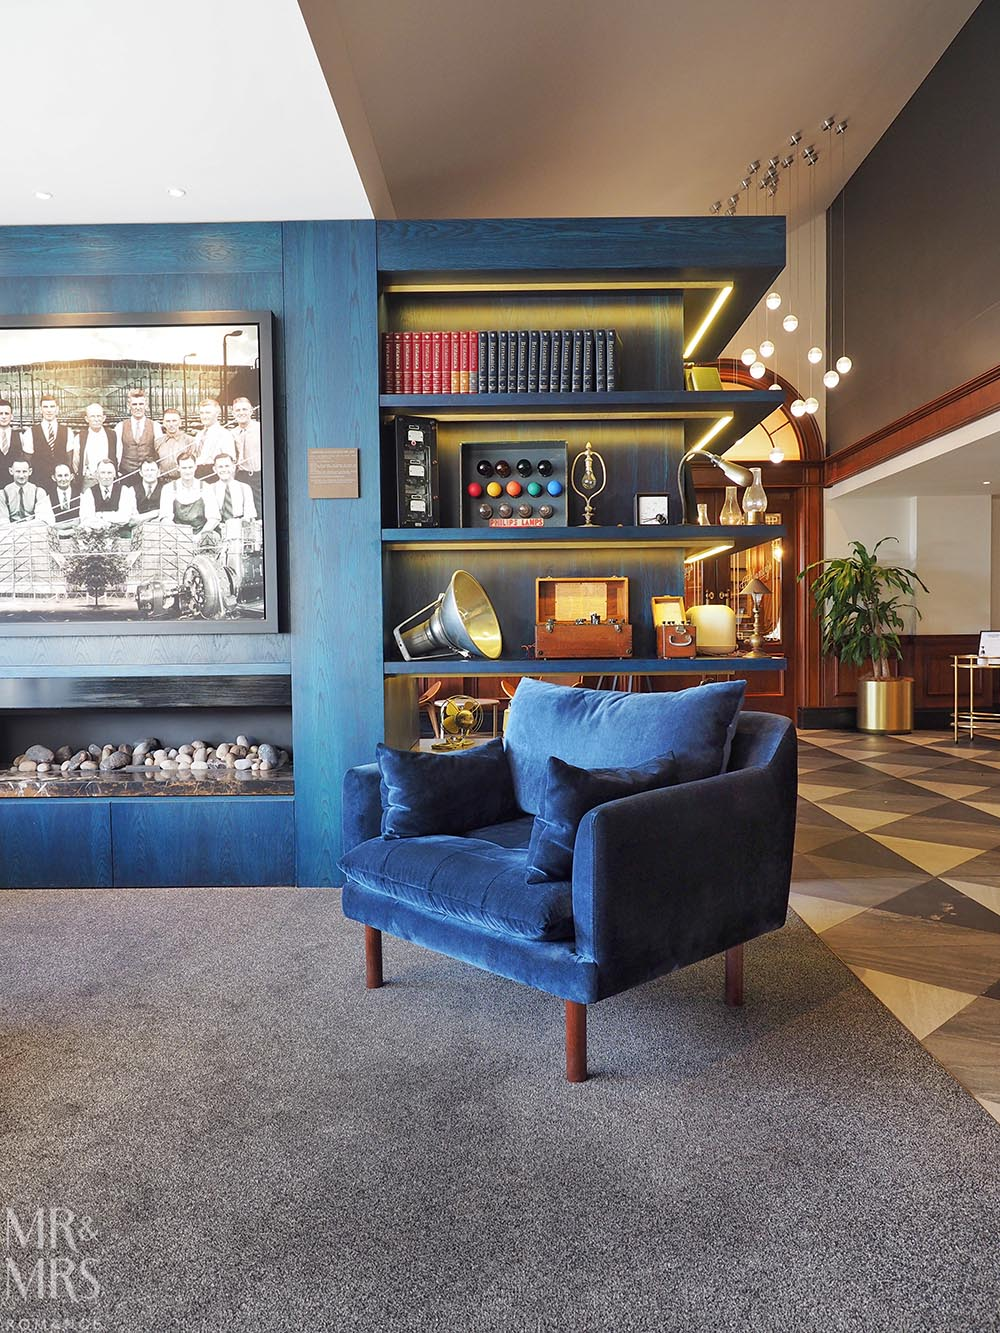 Where to stay in Tamworth NSW - Powerhouse Hotel Tamworth by Rydges - lobby fireplace